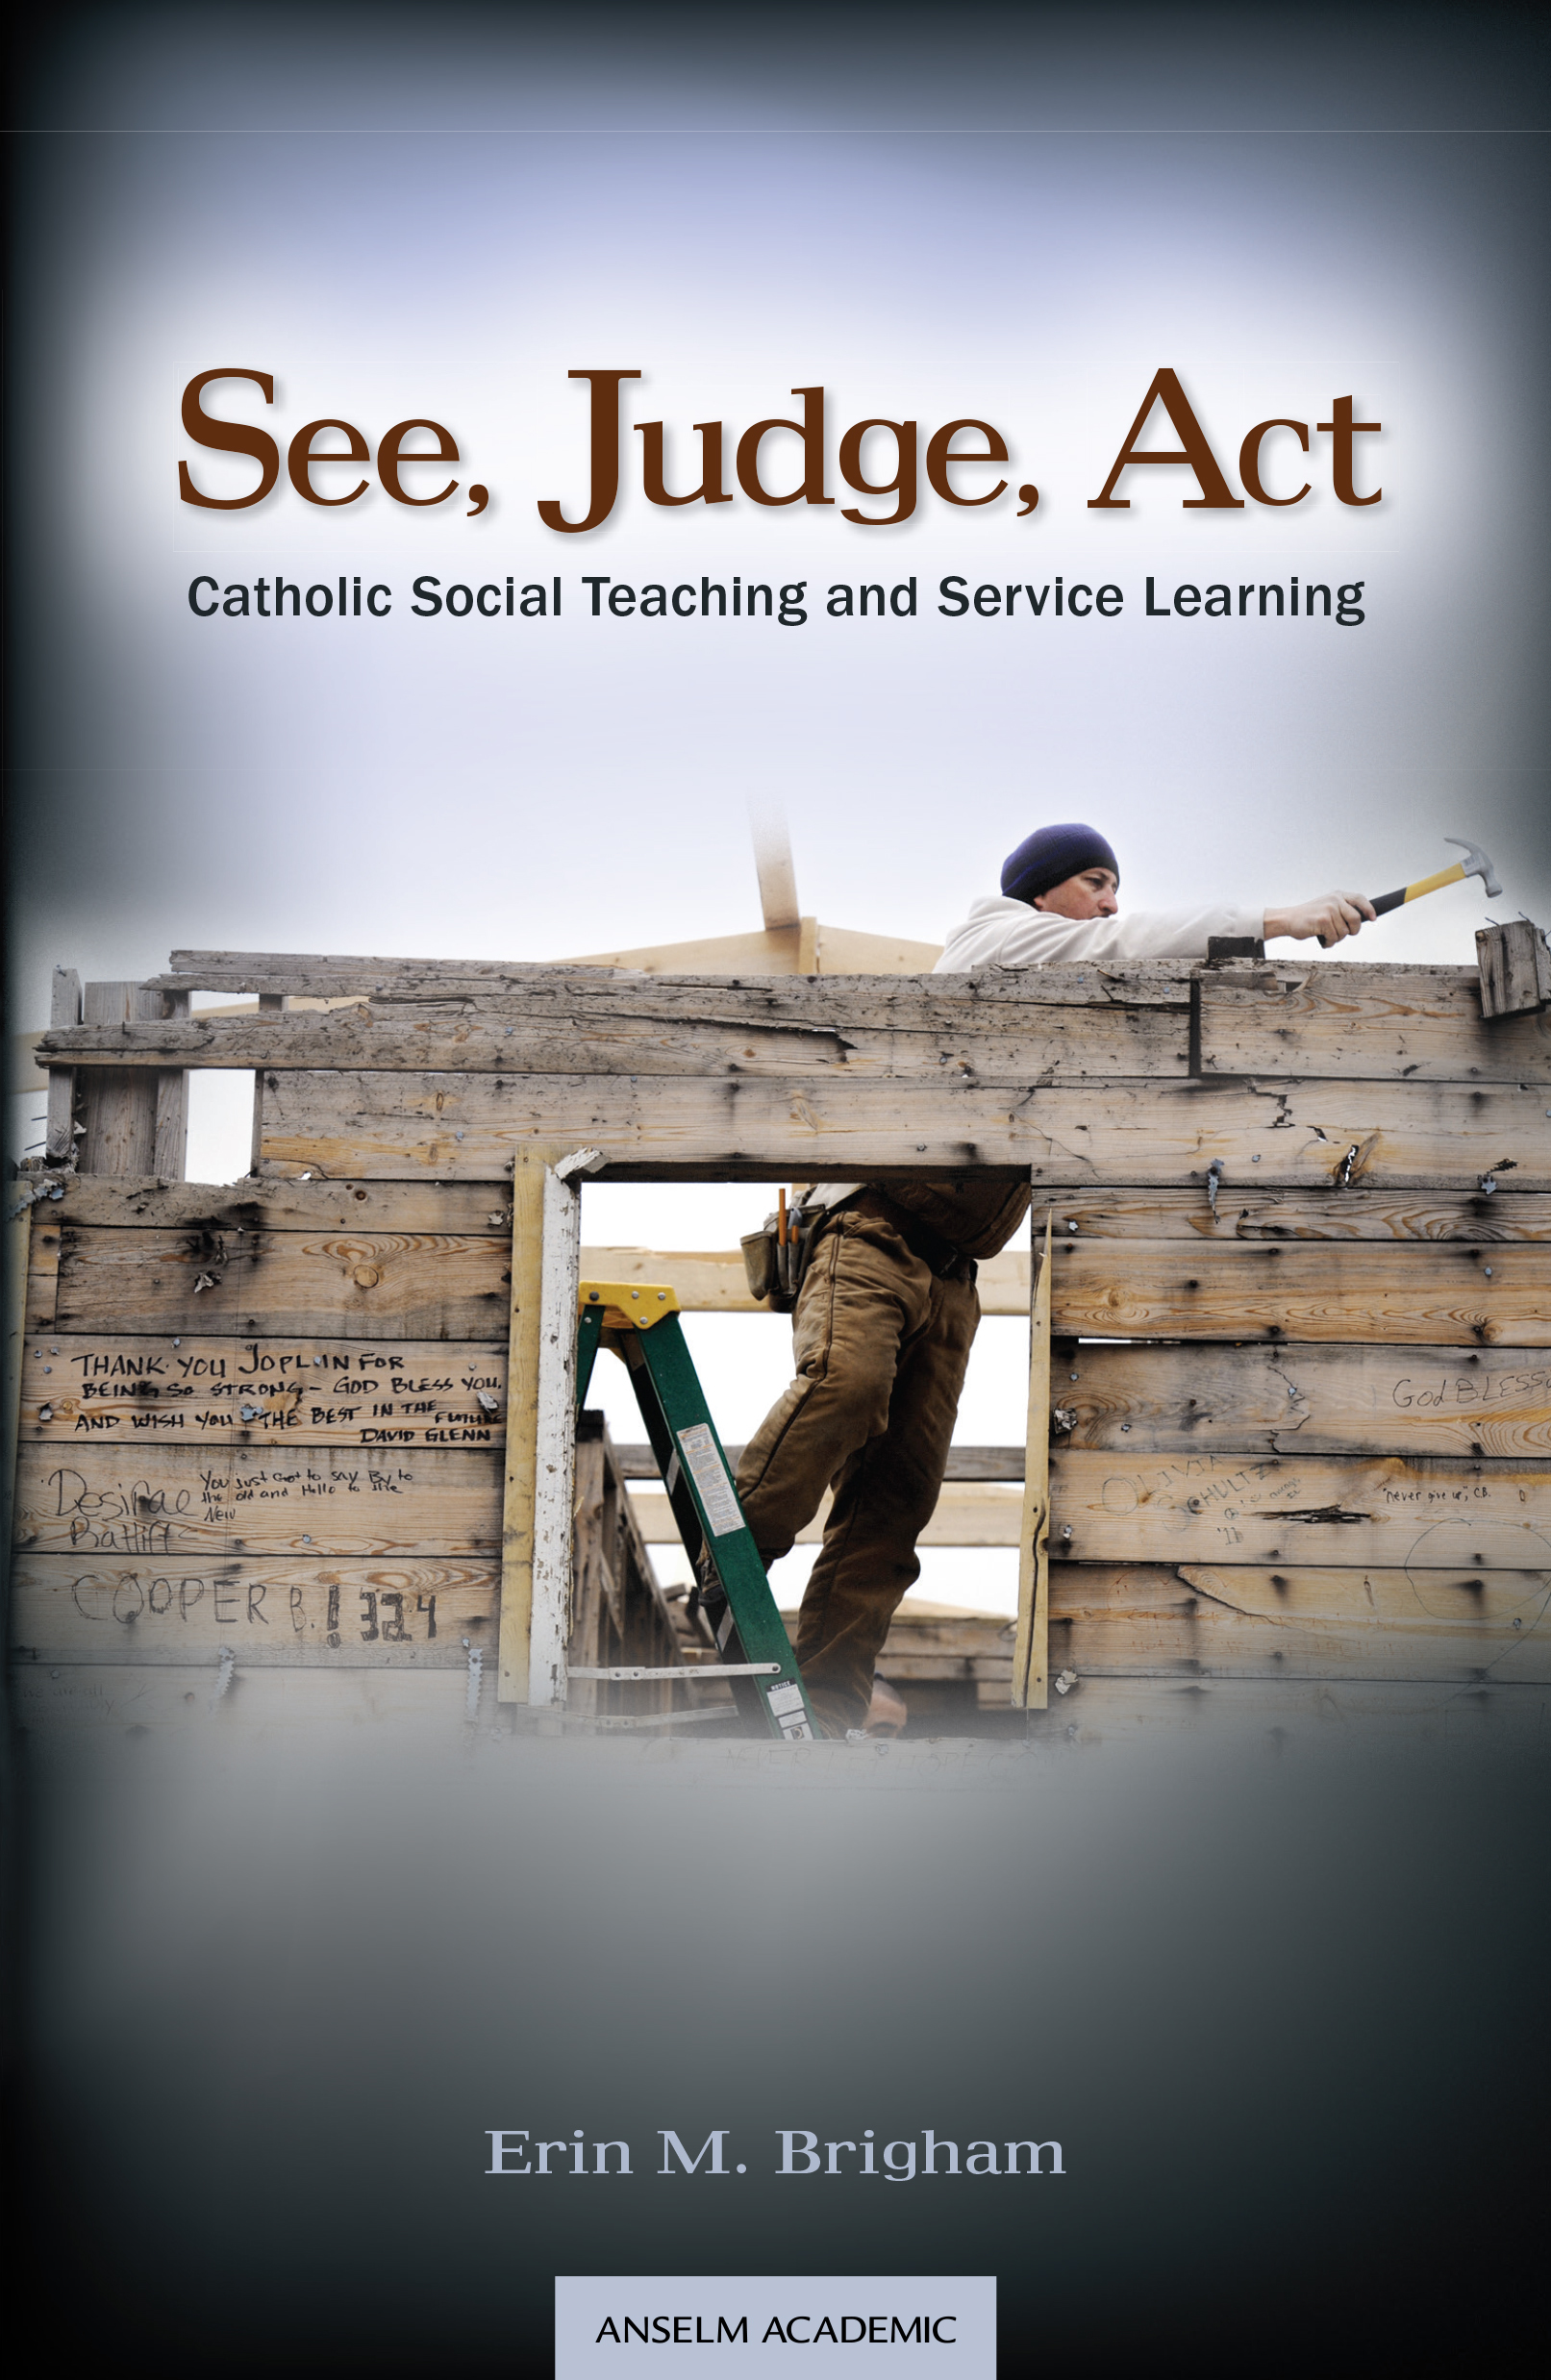 See, Judge, Act: Catholic Social Teaching and Service Learning